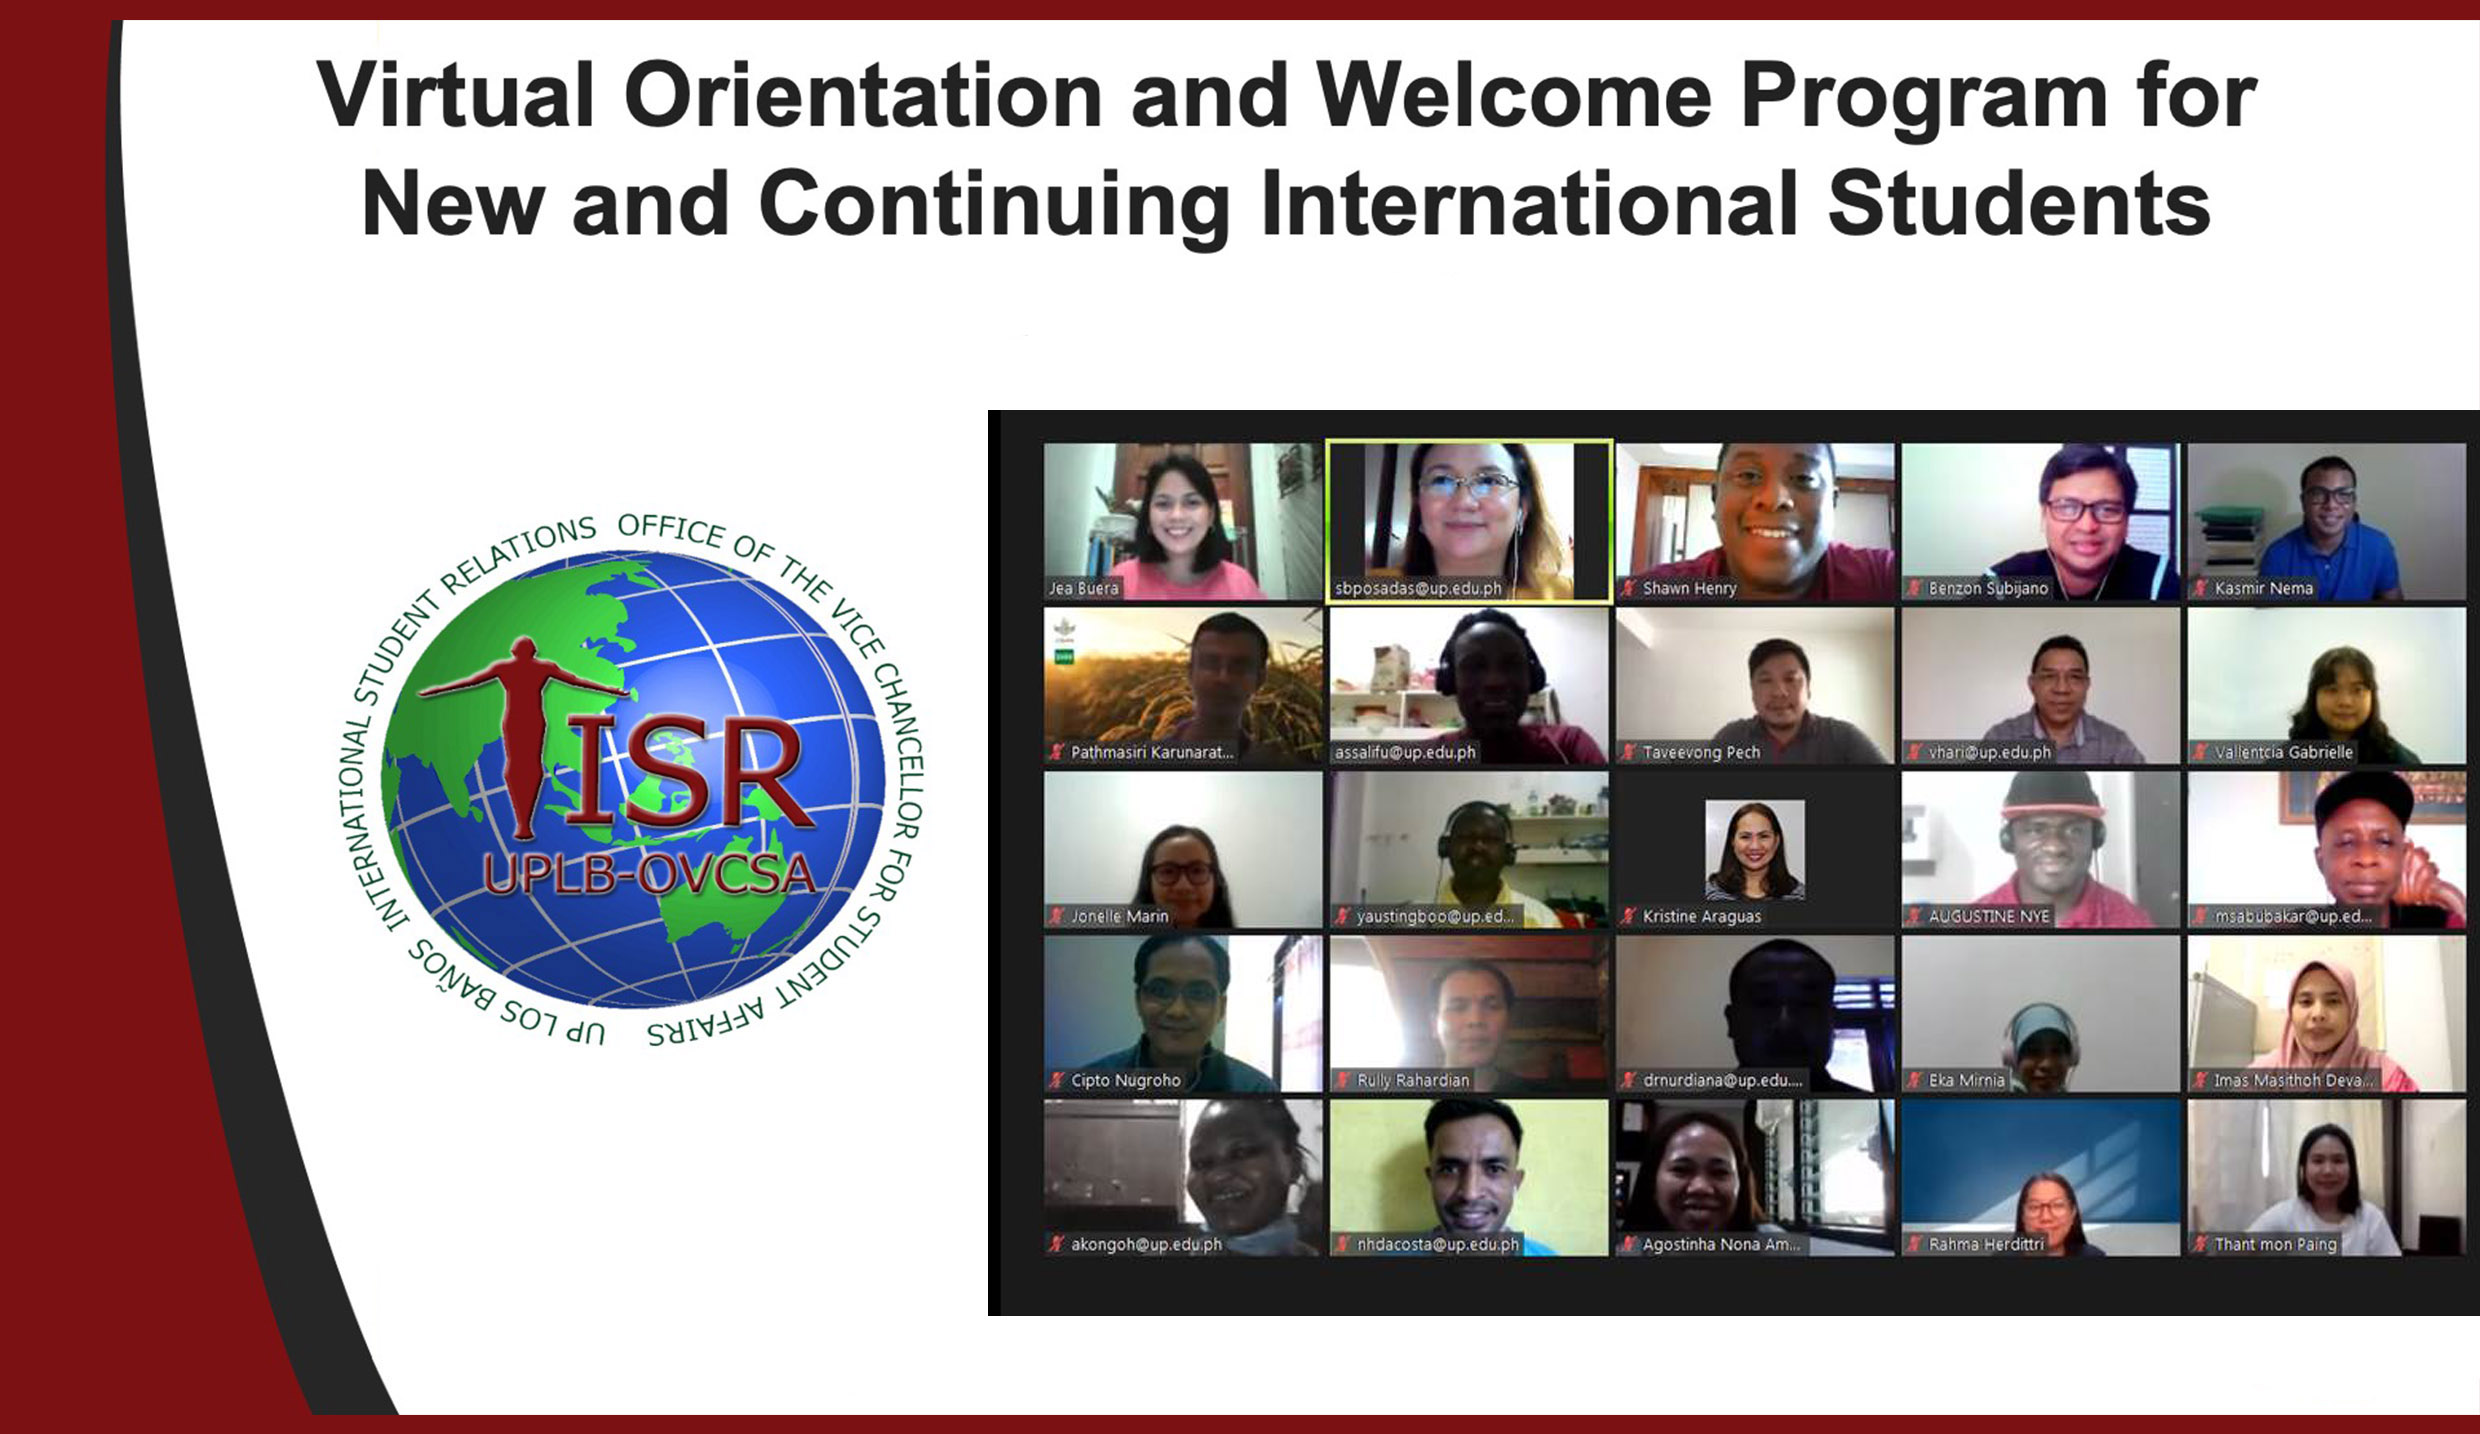 ISR-OVCSA orients international students